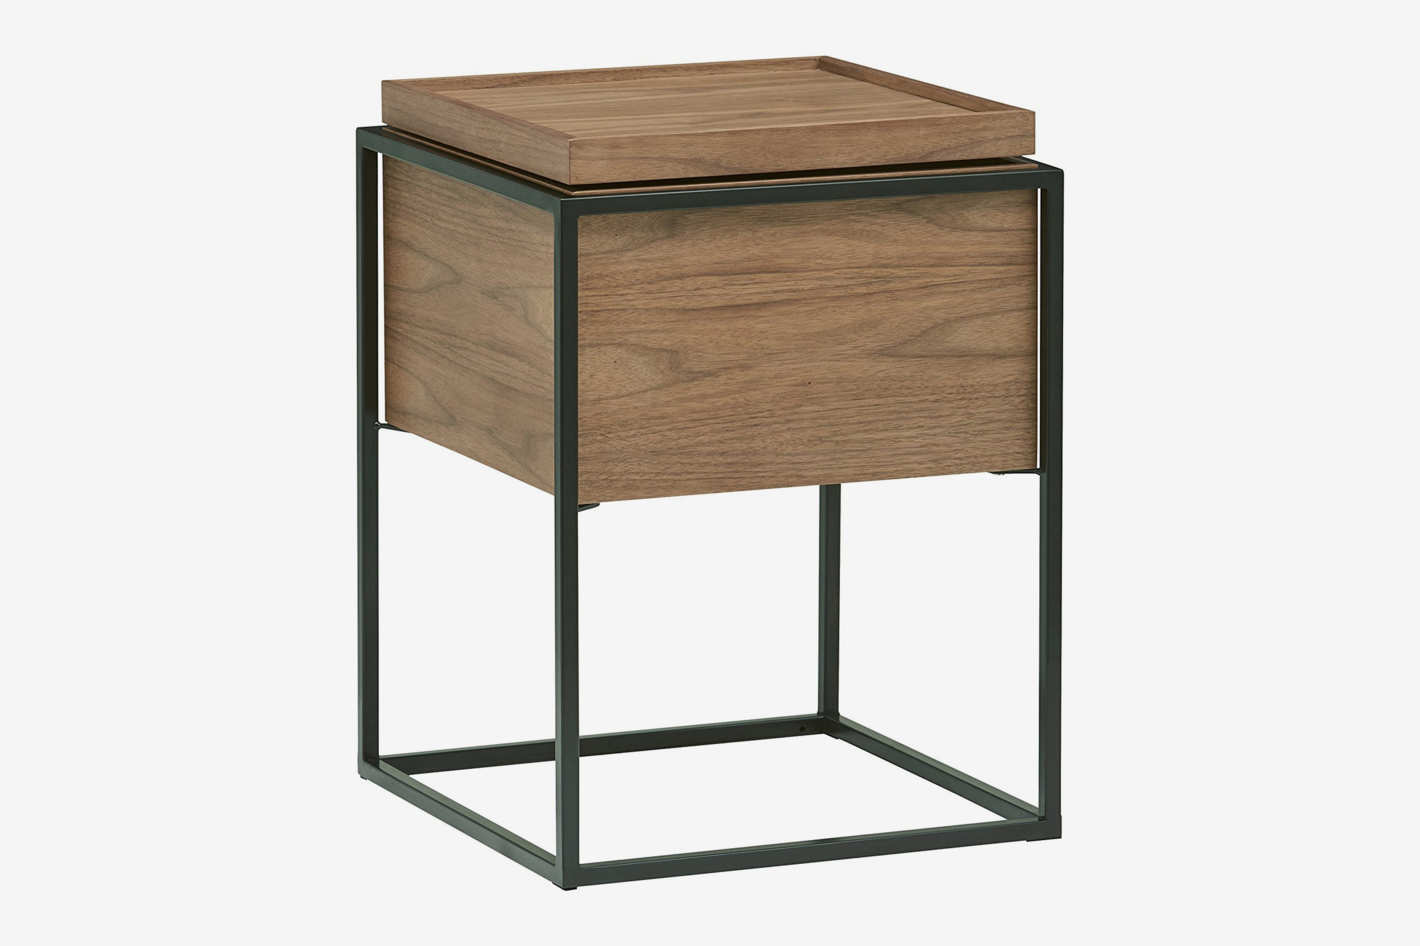 best end tables small rectangular accent table rivet axel lid storage wood and metal side nic umbrella office desk white outdoor made nest wooden cabinet runner patterns for